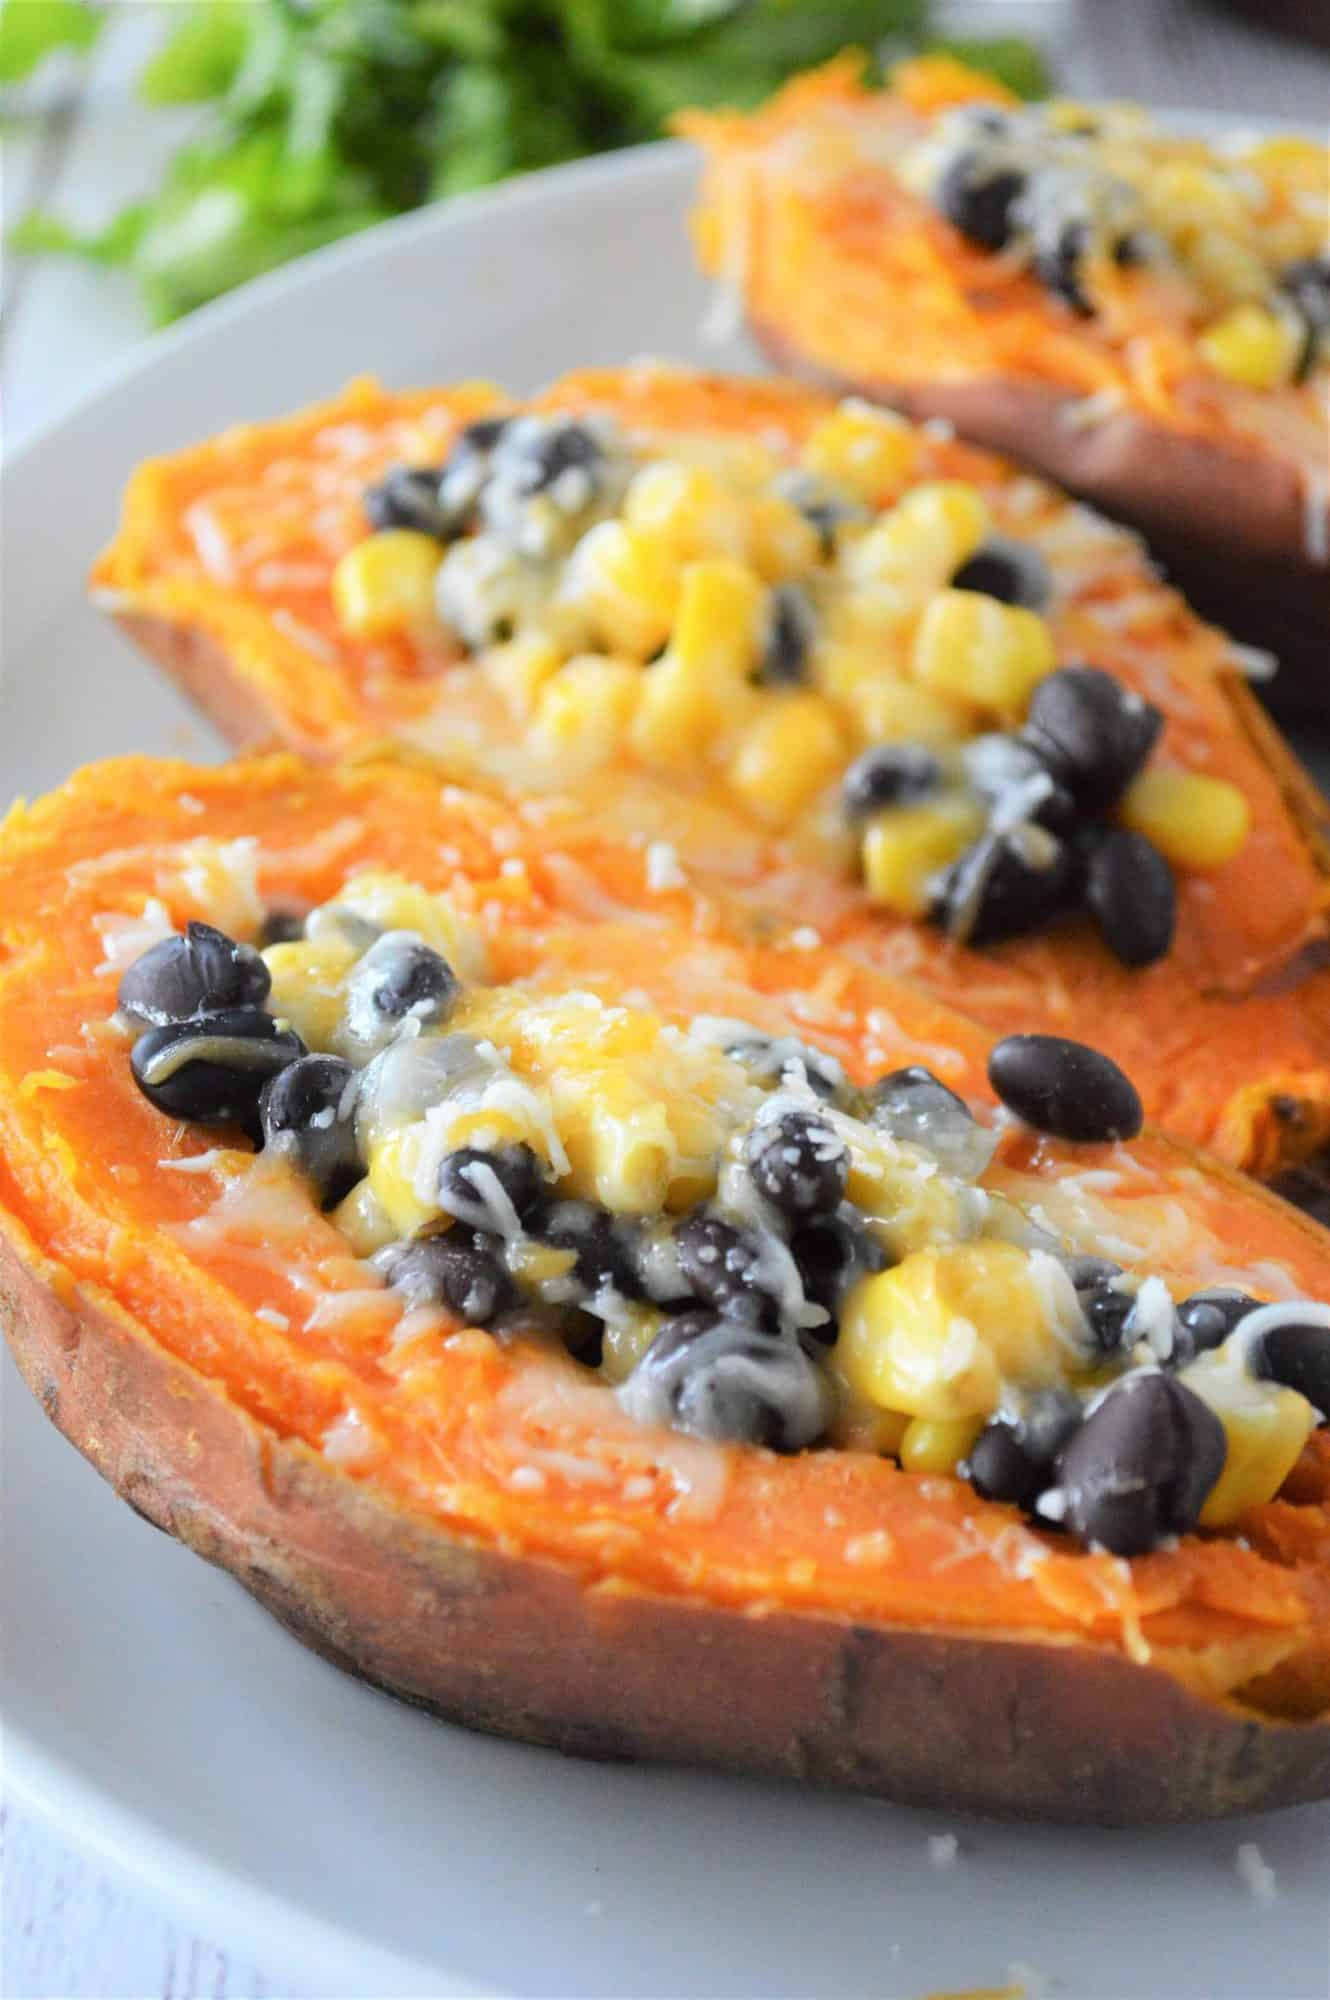 Sweet potato halves stuffed with black beans, corn and cheese